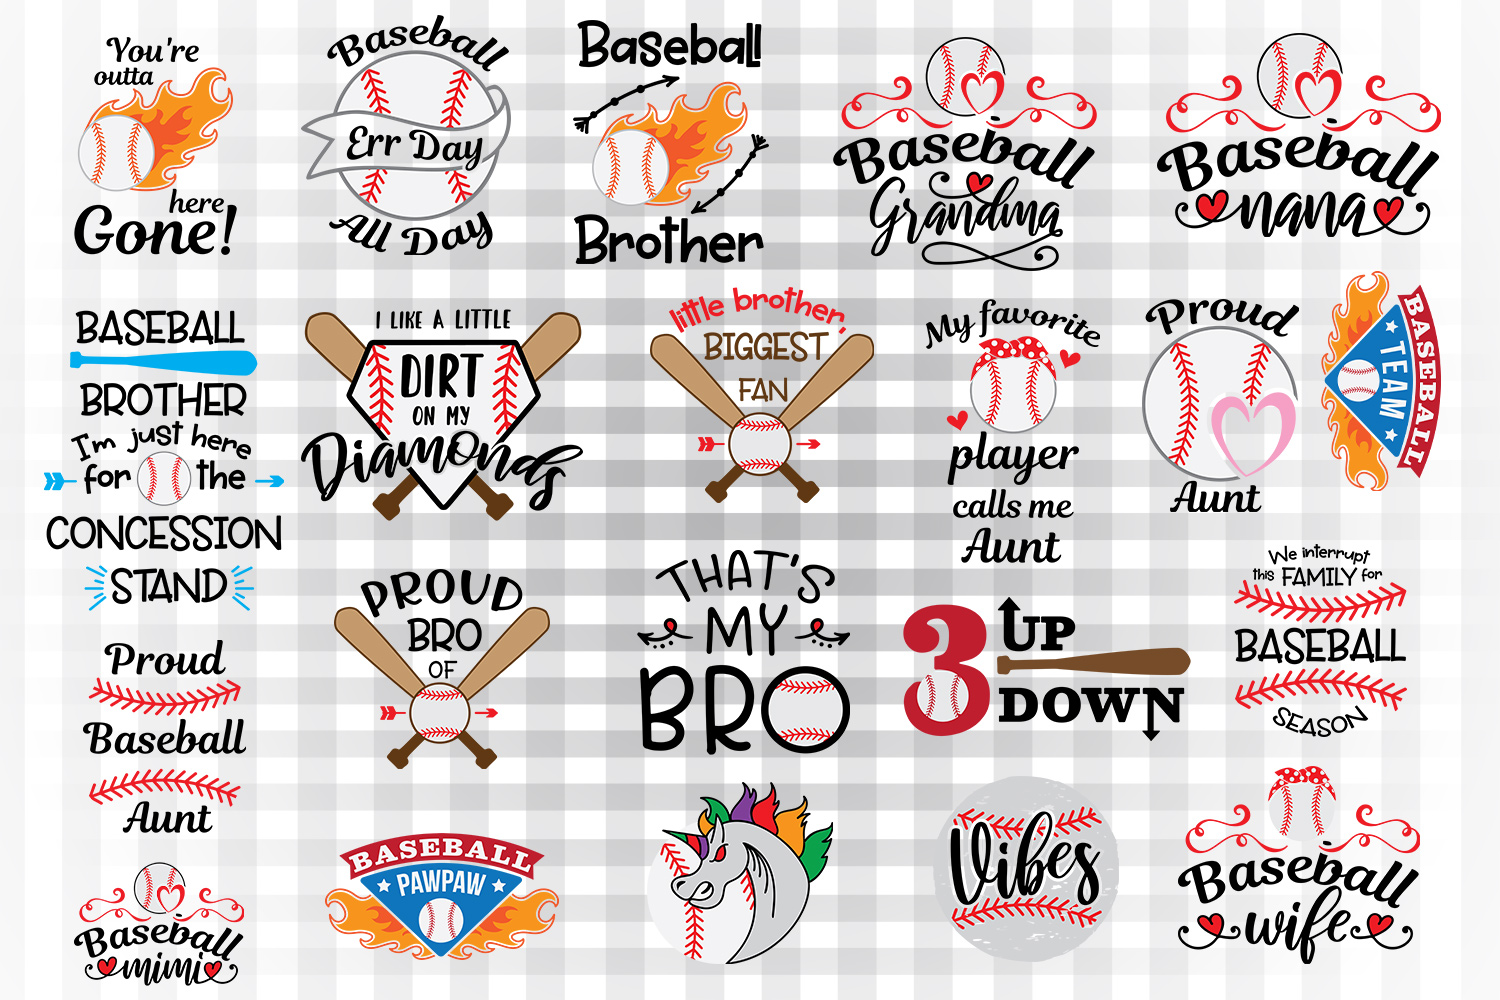 Download Free Baseball Bundle 2 Graphic By Illustrator Guru Creative Fabrica for Cricut Explore, Silhouette and other cutting machines.